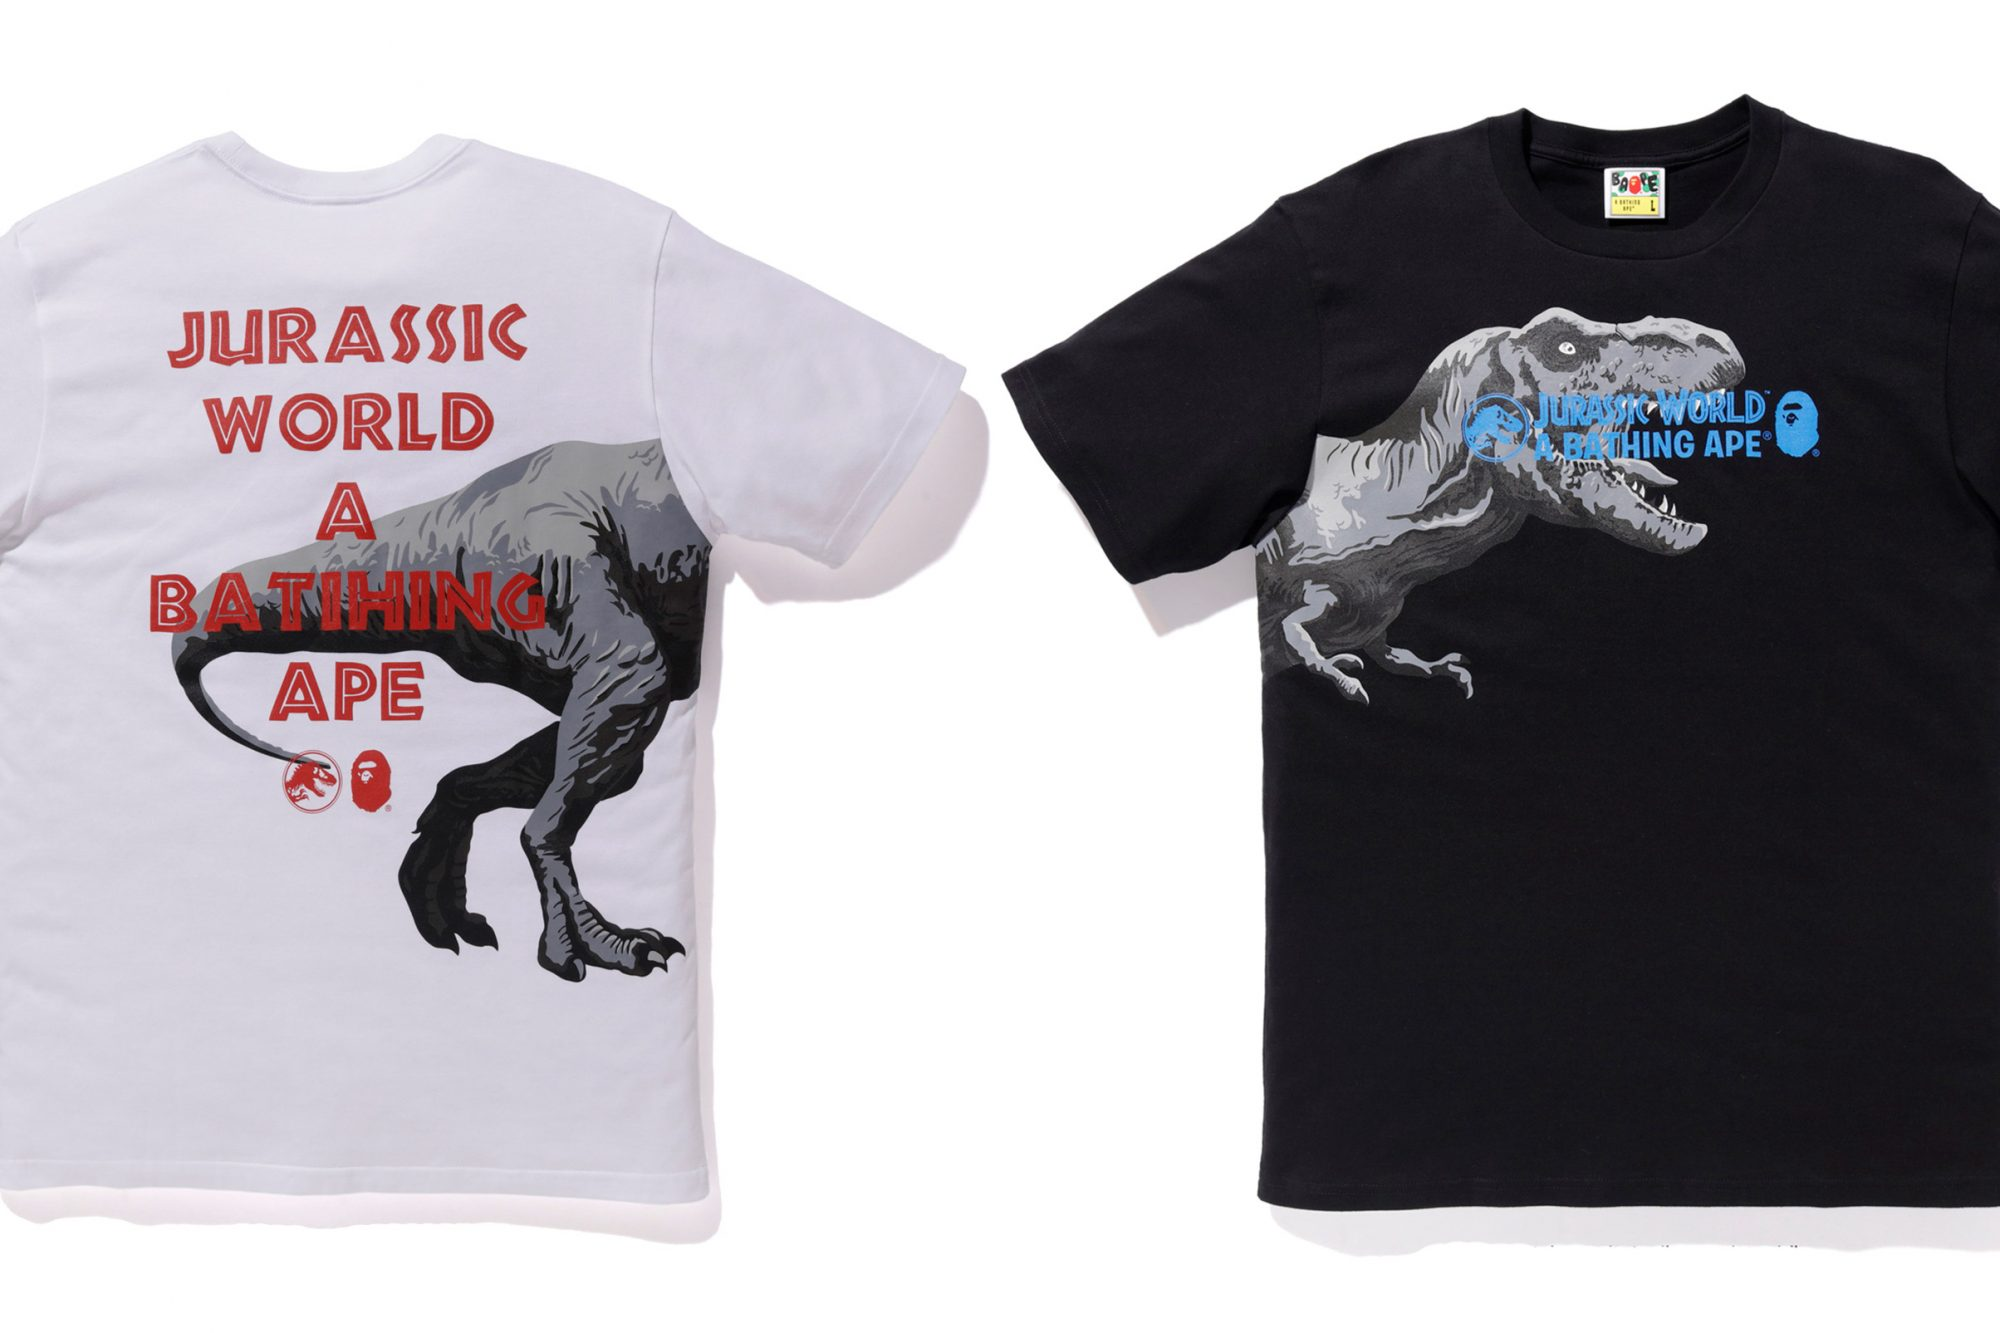 BAPE-JURASSIC-WORLD-03